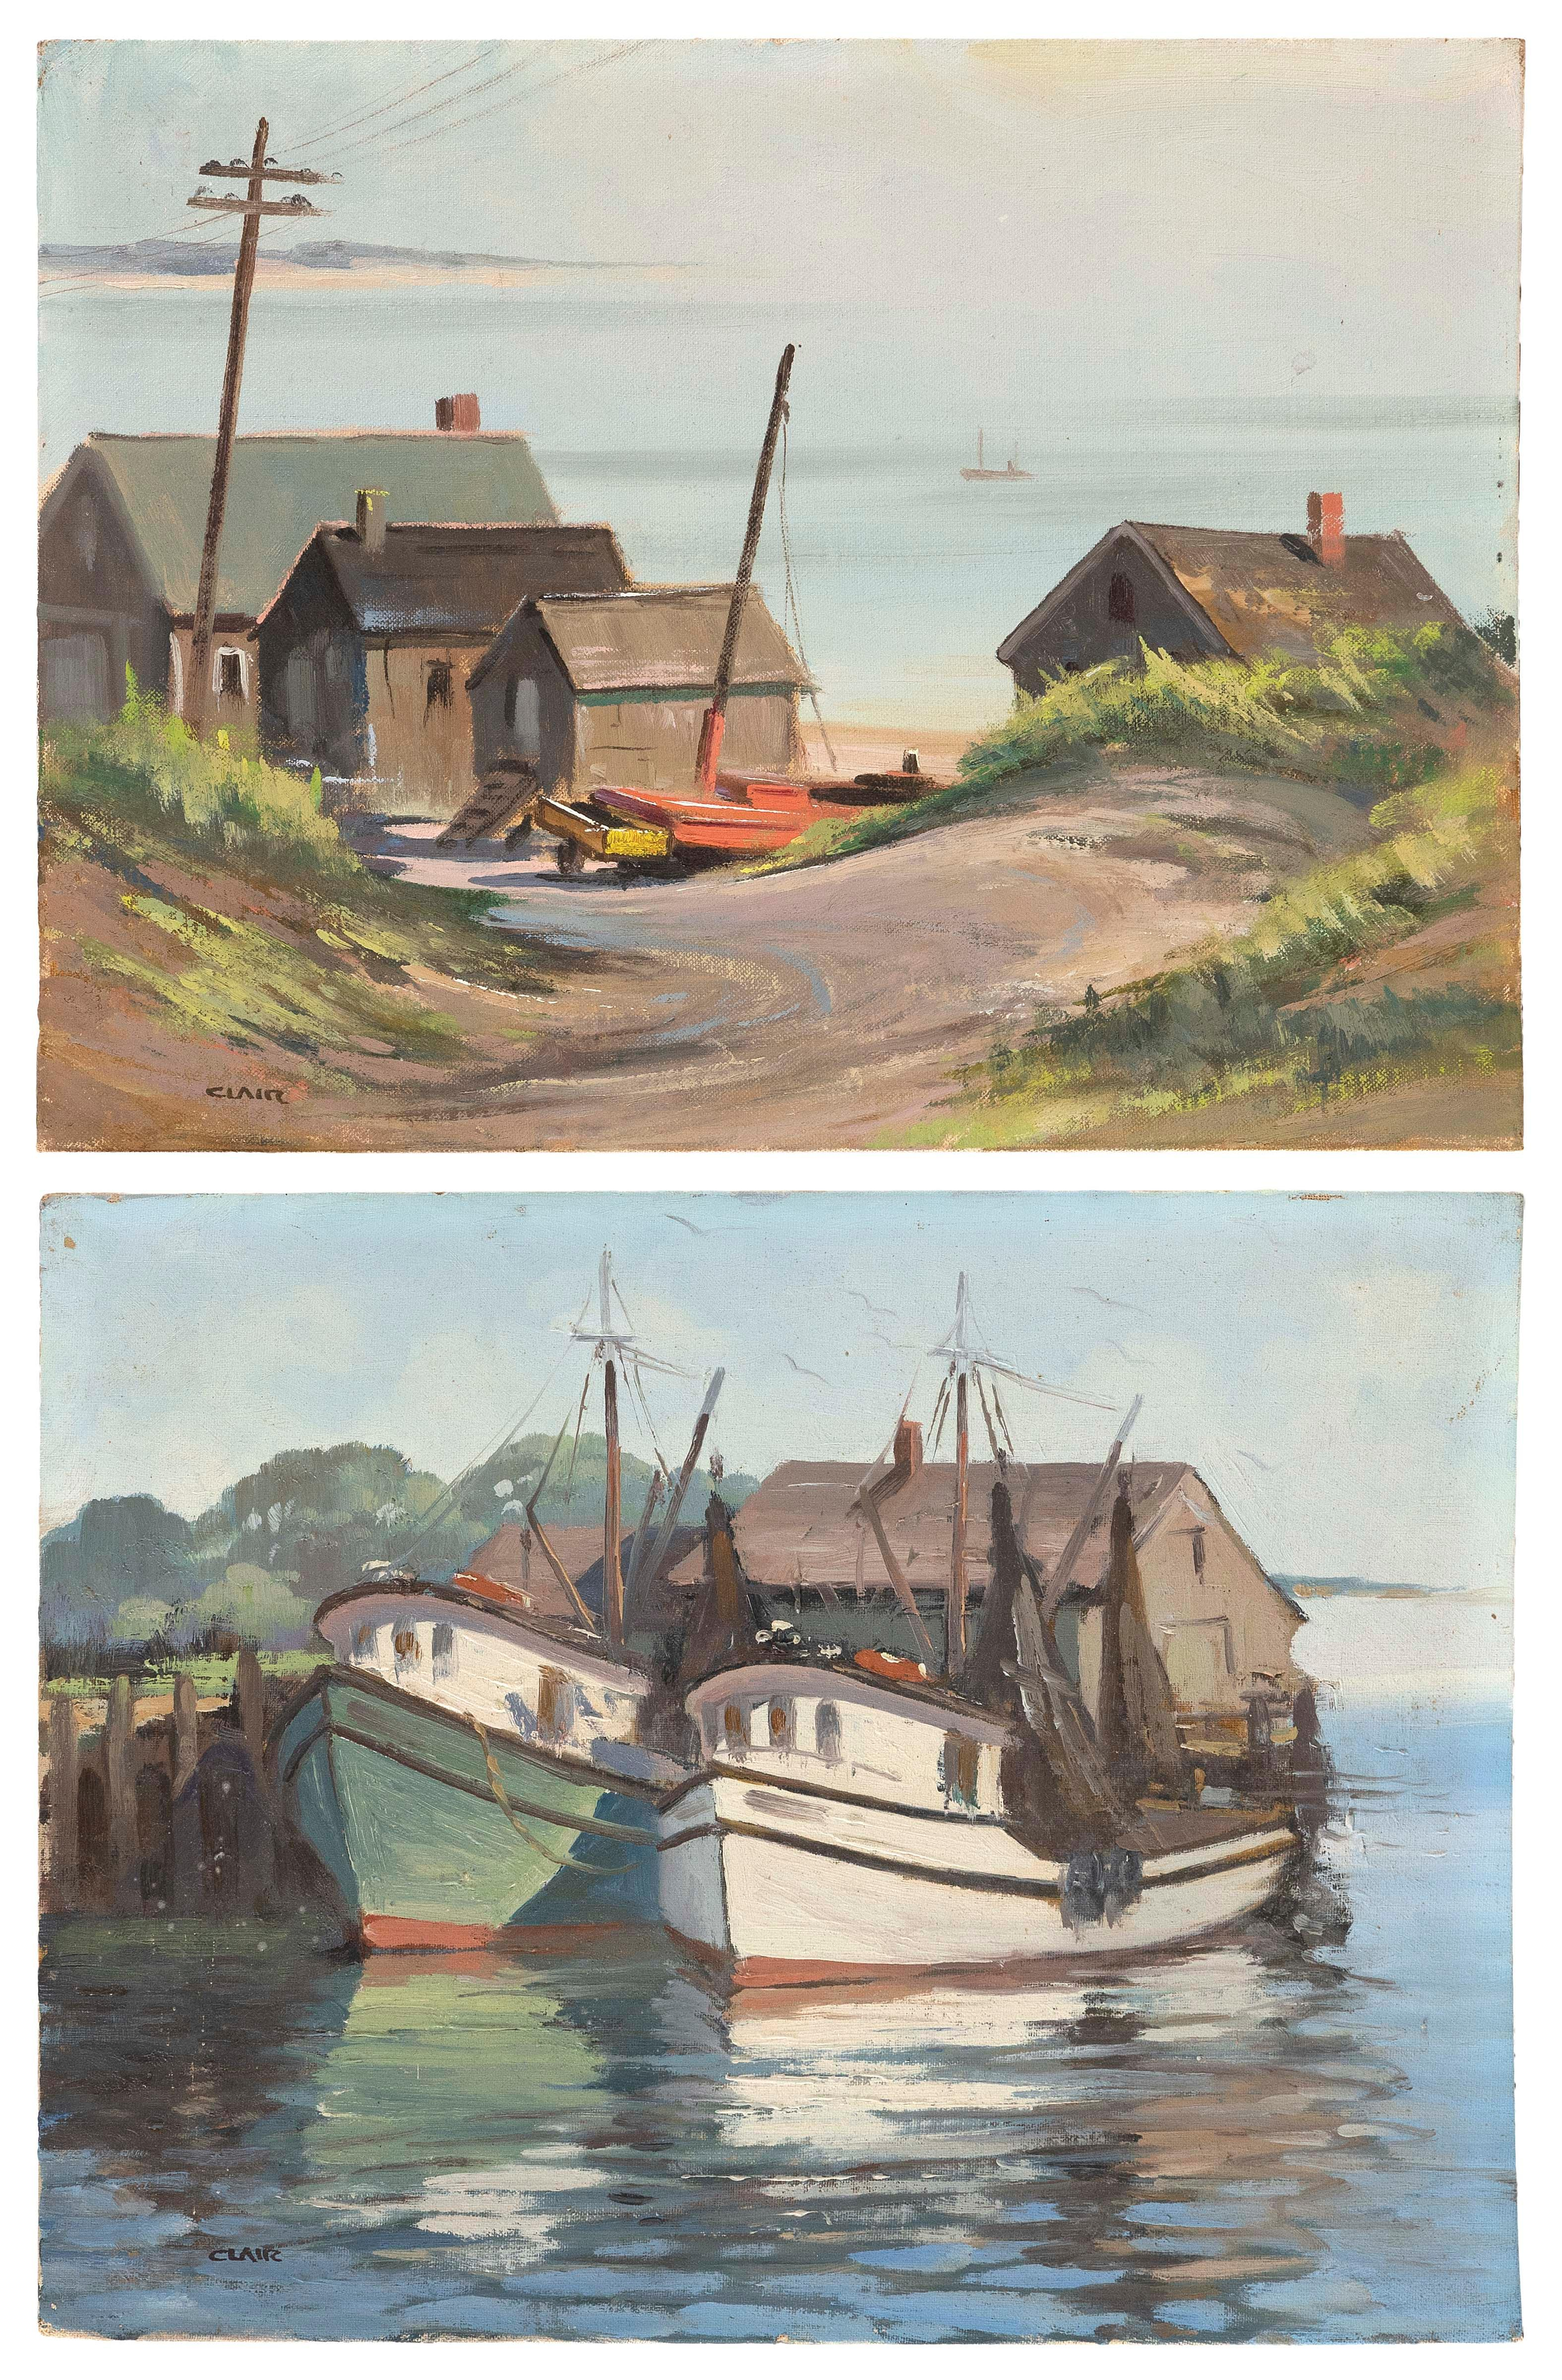 """IRENE STRY (Massachusetts/New York/Hungary, 1904-1963), Two works: Fishing boats at a harbor and seaside houses., Oils on canvas board, 12"""" x 16"""". Unframed."""